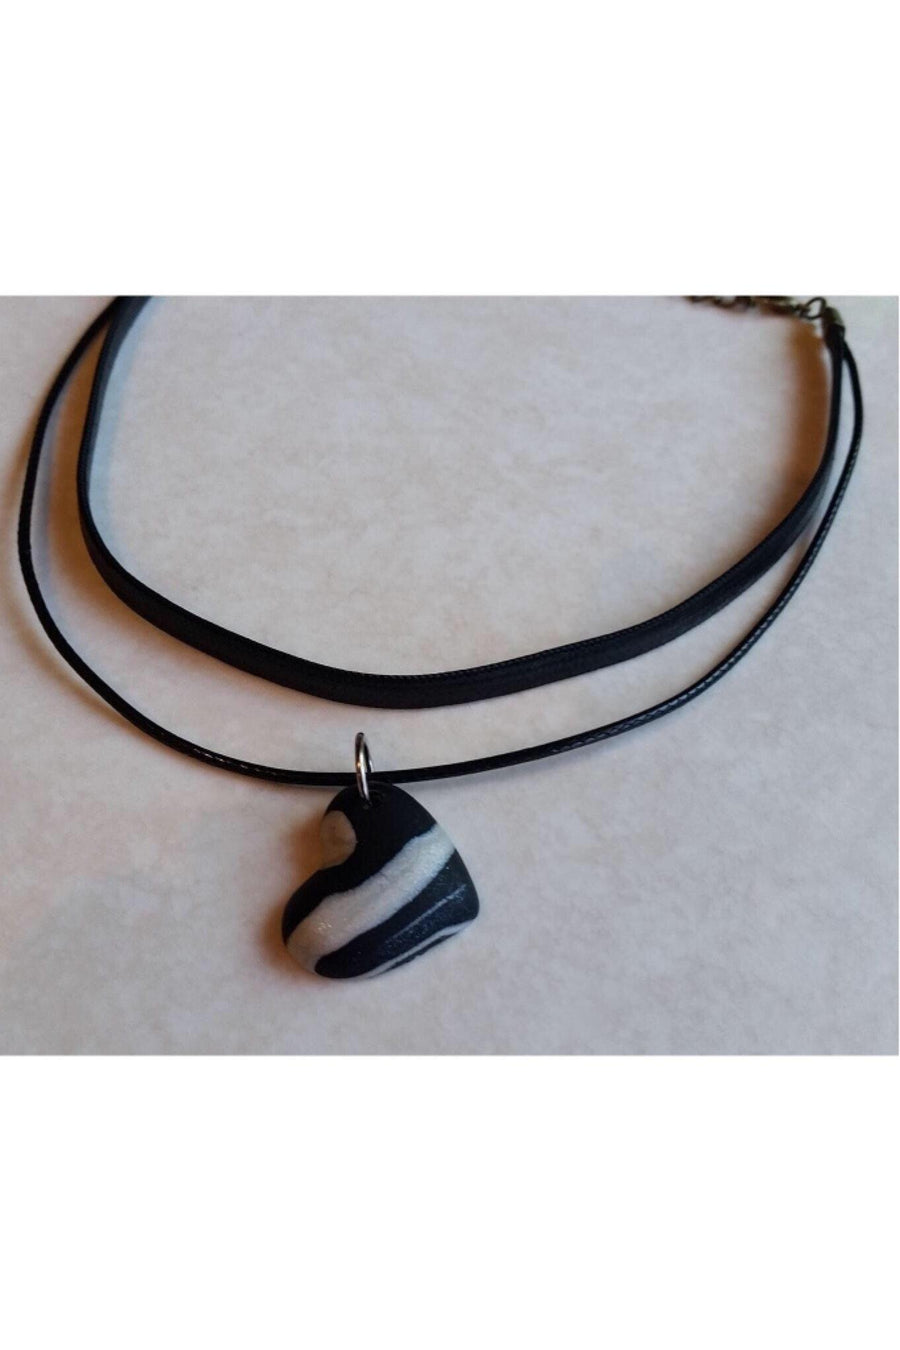 Choker Necklace | Carly Choker With Polymer Clay Heart Necklace Gray.Label